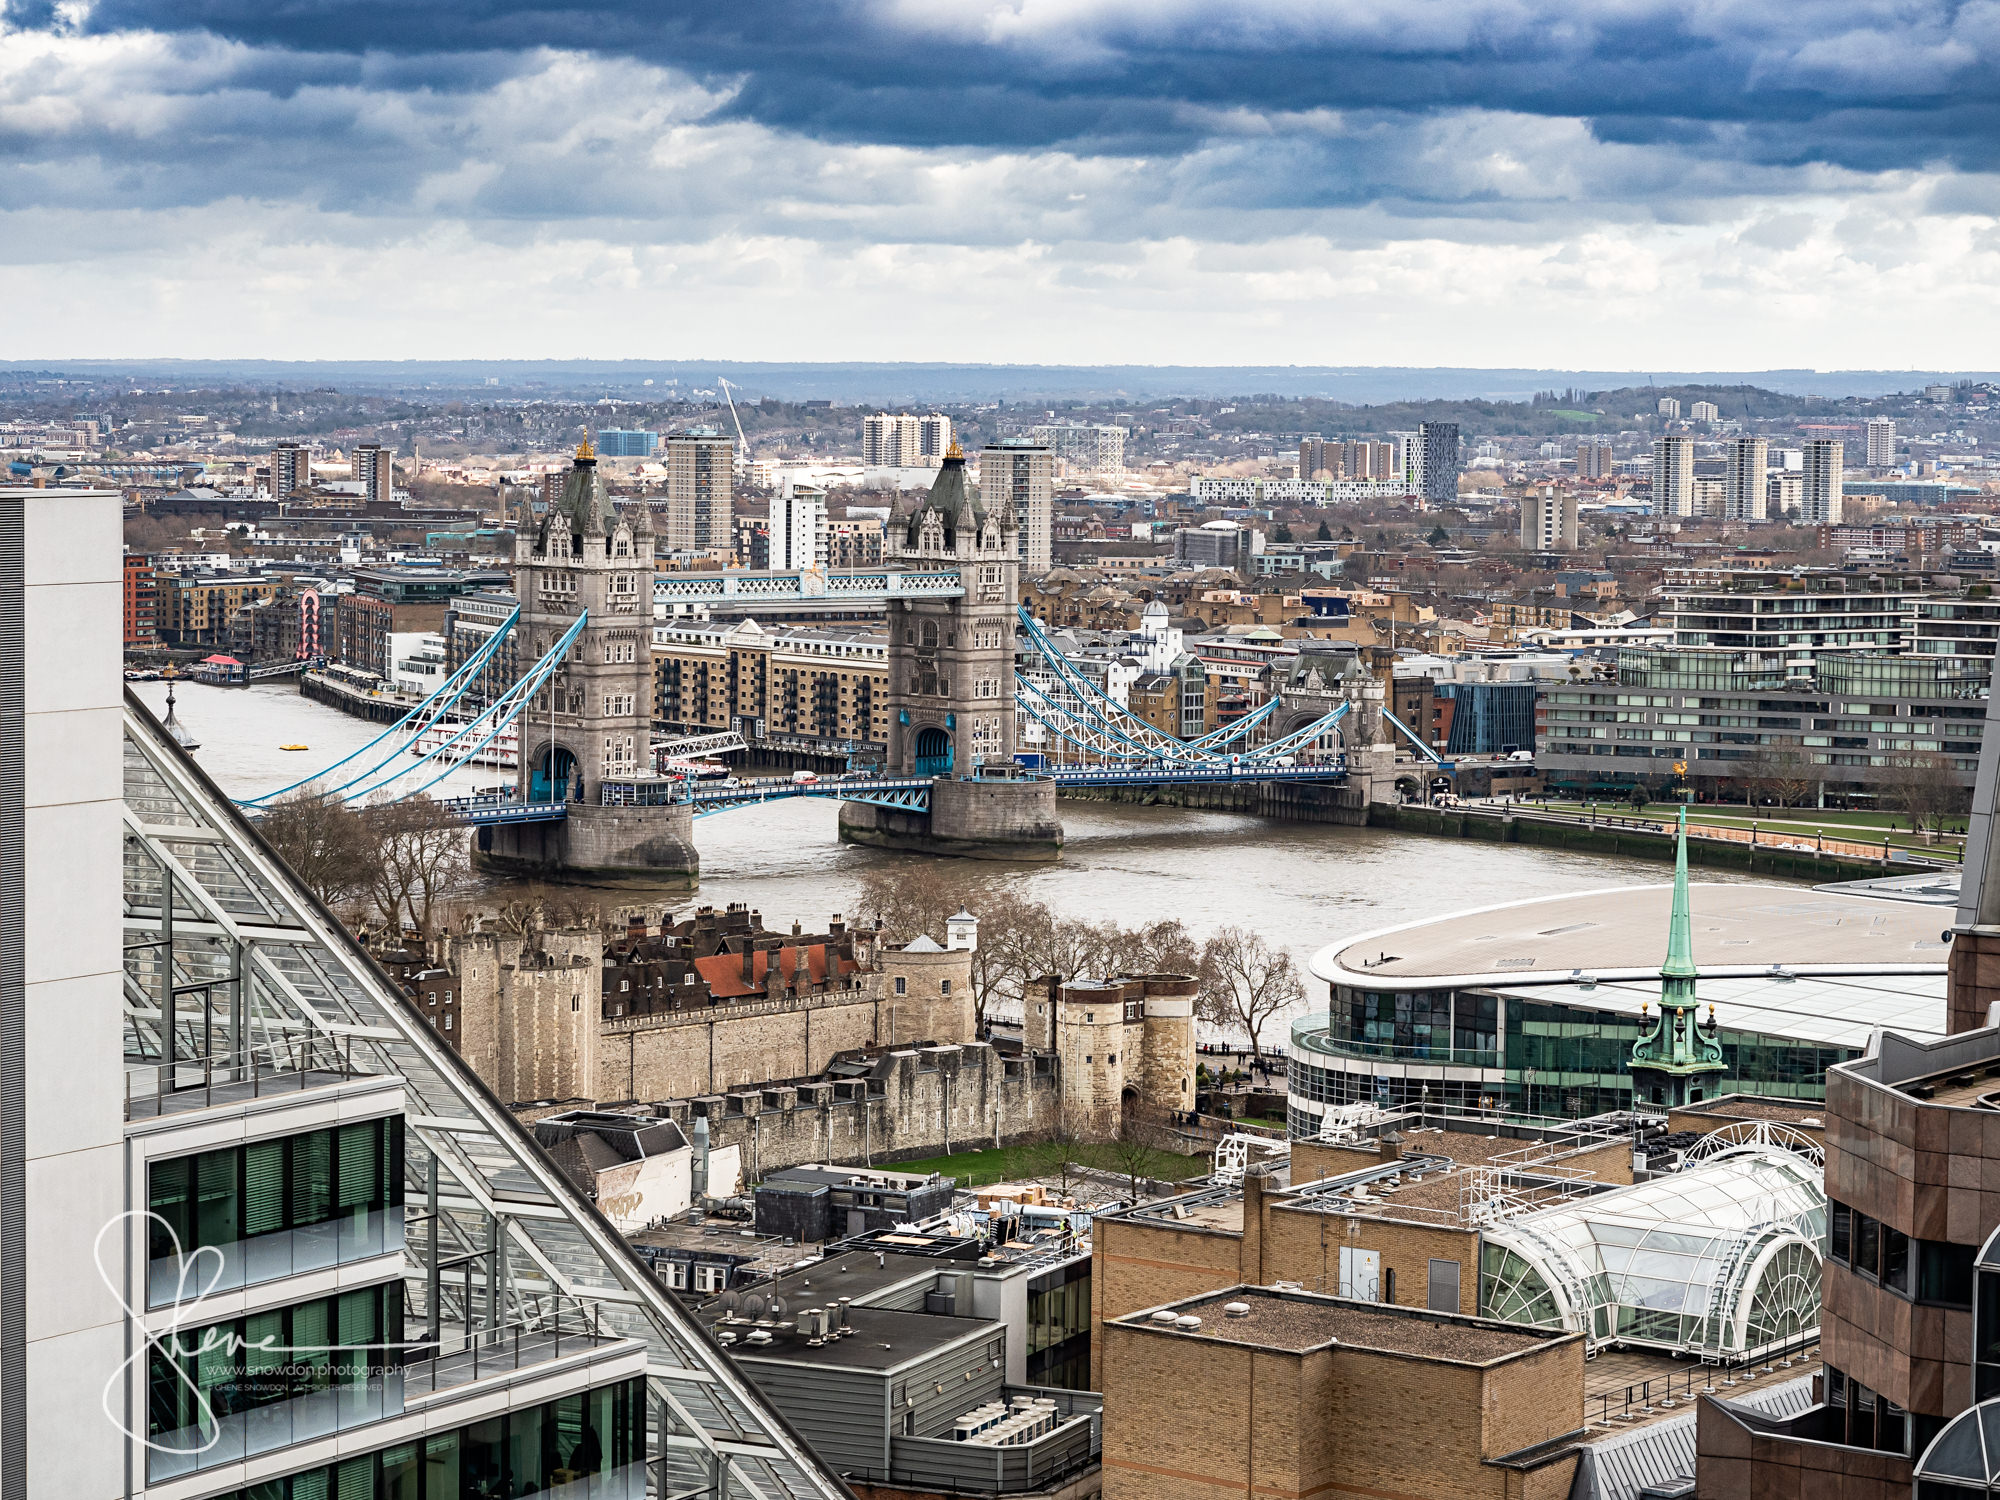 5 things to do on a summer holiday weekend in London